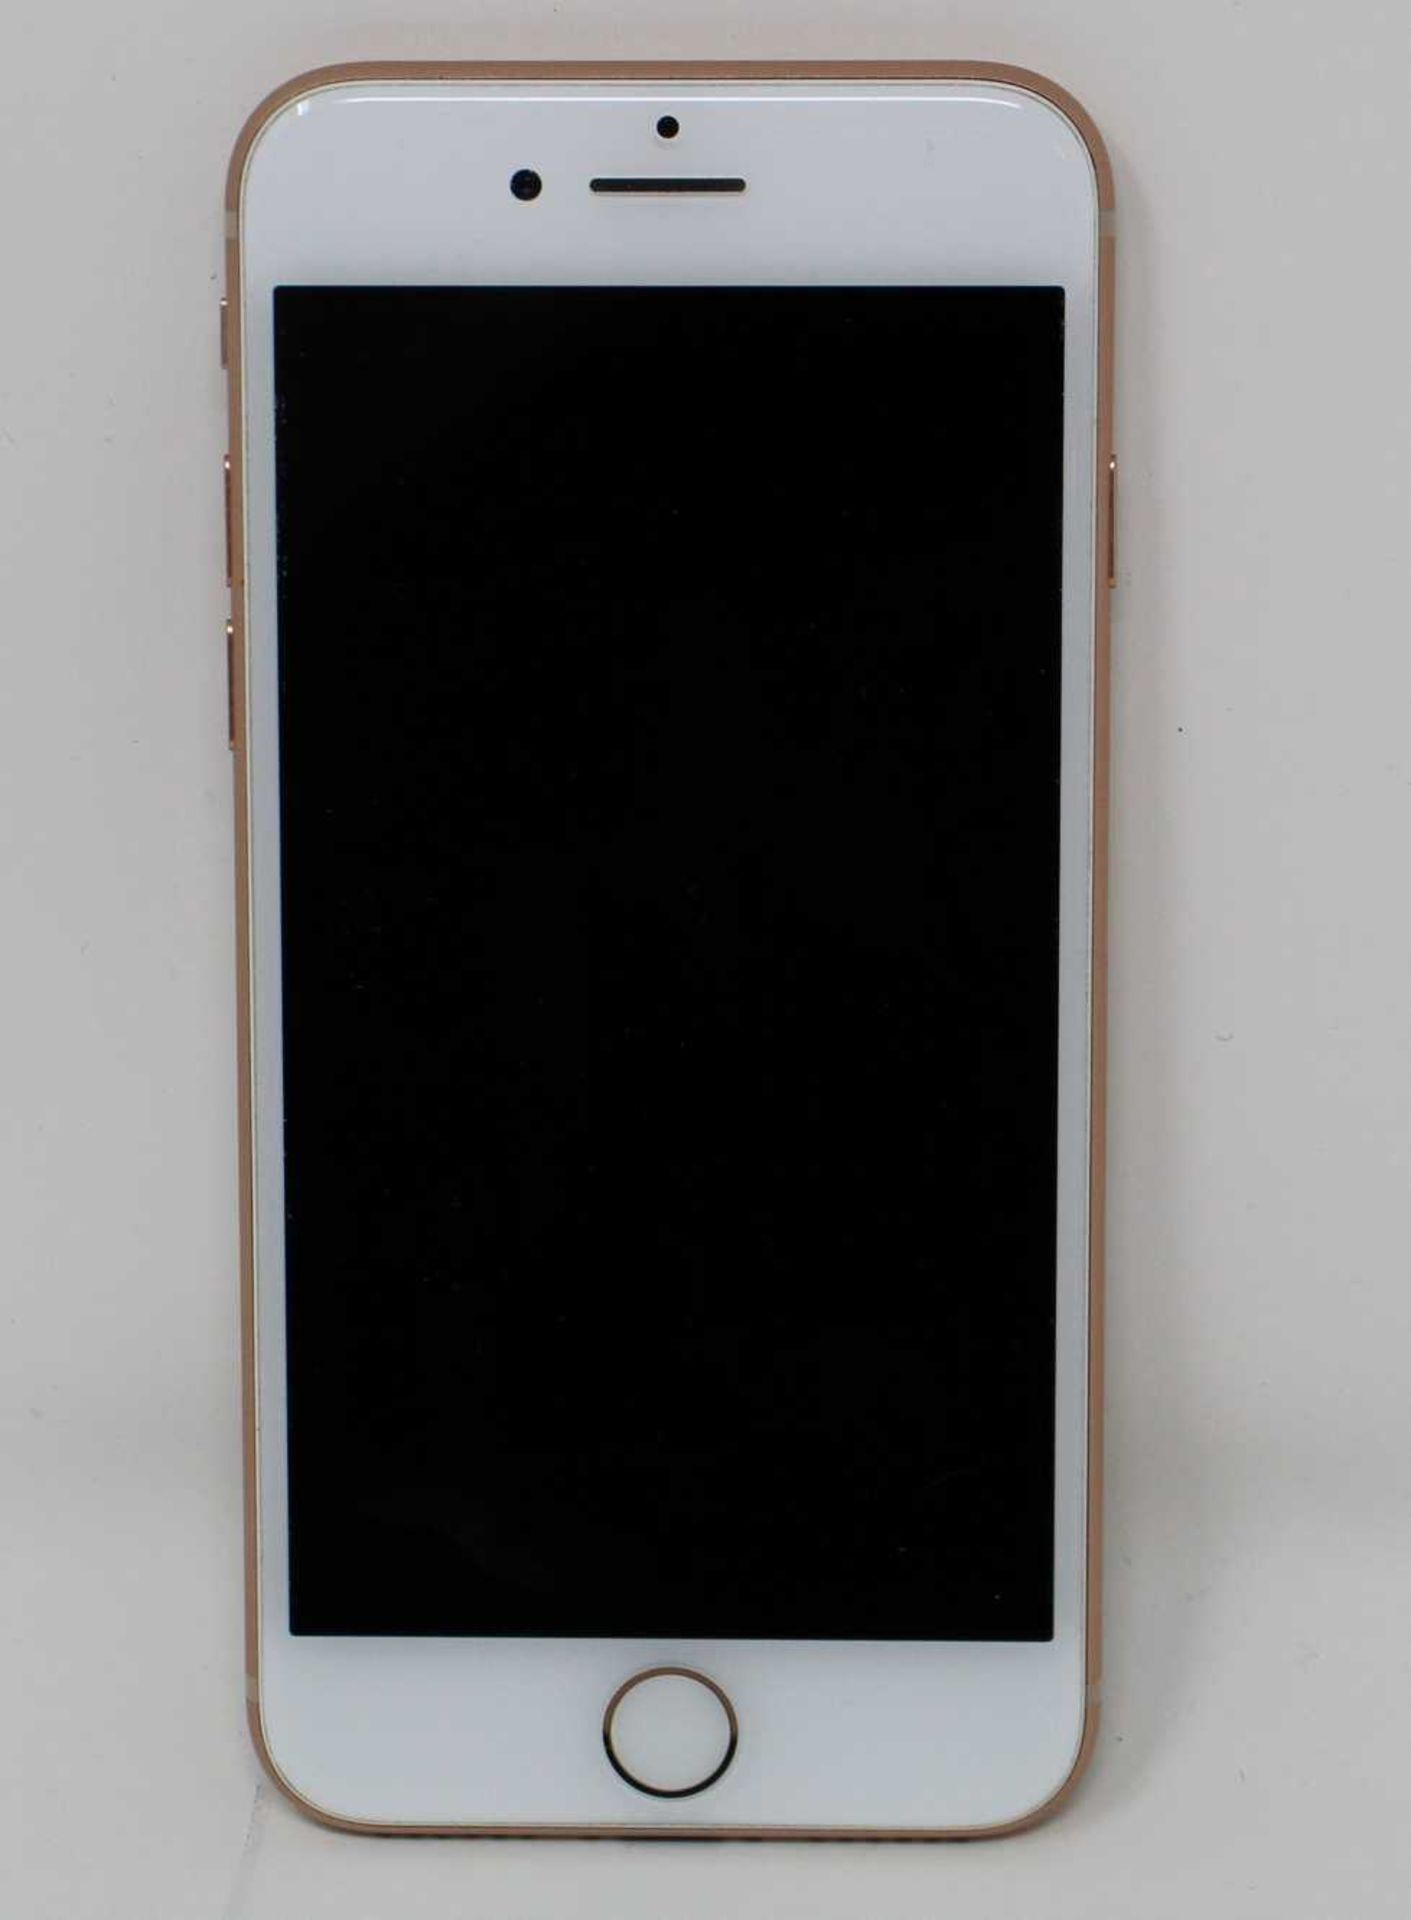 A pre-owned Apple iPhone 8 (AT&T/T-Mobile/Global/A1905) 64GB in Gold (iCloud activation clear) ( - Image 2 of 7